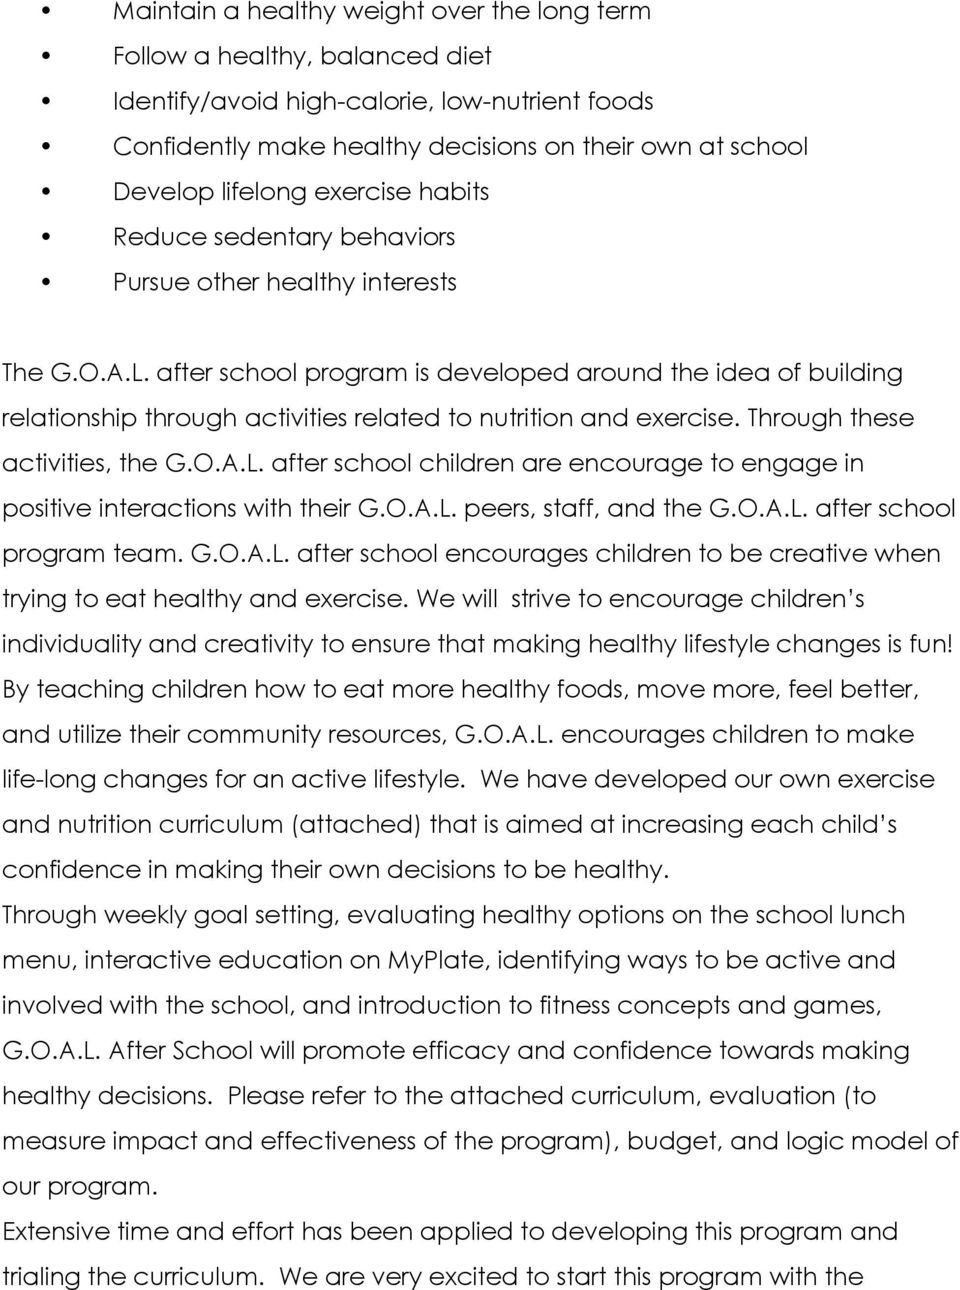 after school program is developed around the idea of building relationship through activities related to nutrition and exercise. Through these activities, the G.O.A.L.